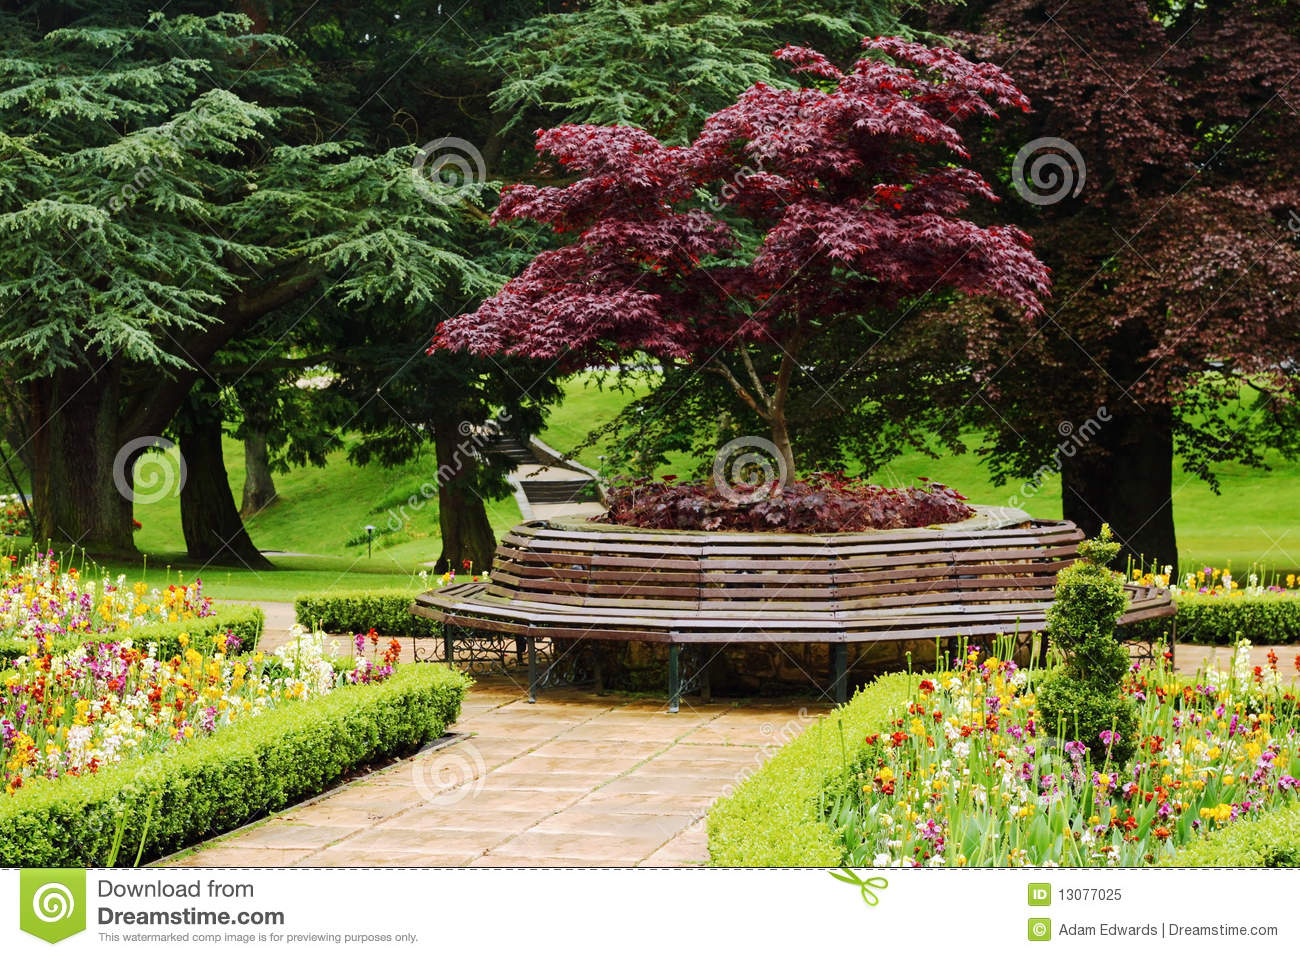 Vibrant Floral Garden With Round Bench Royalty Free Stock